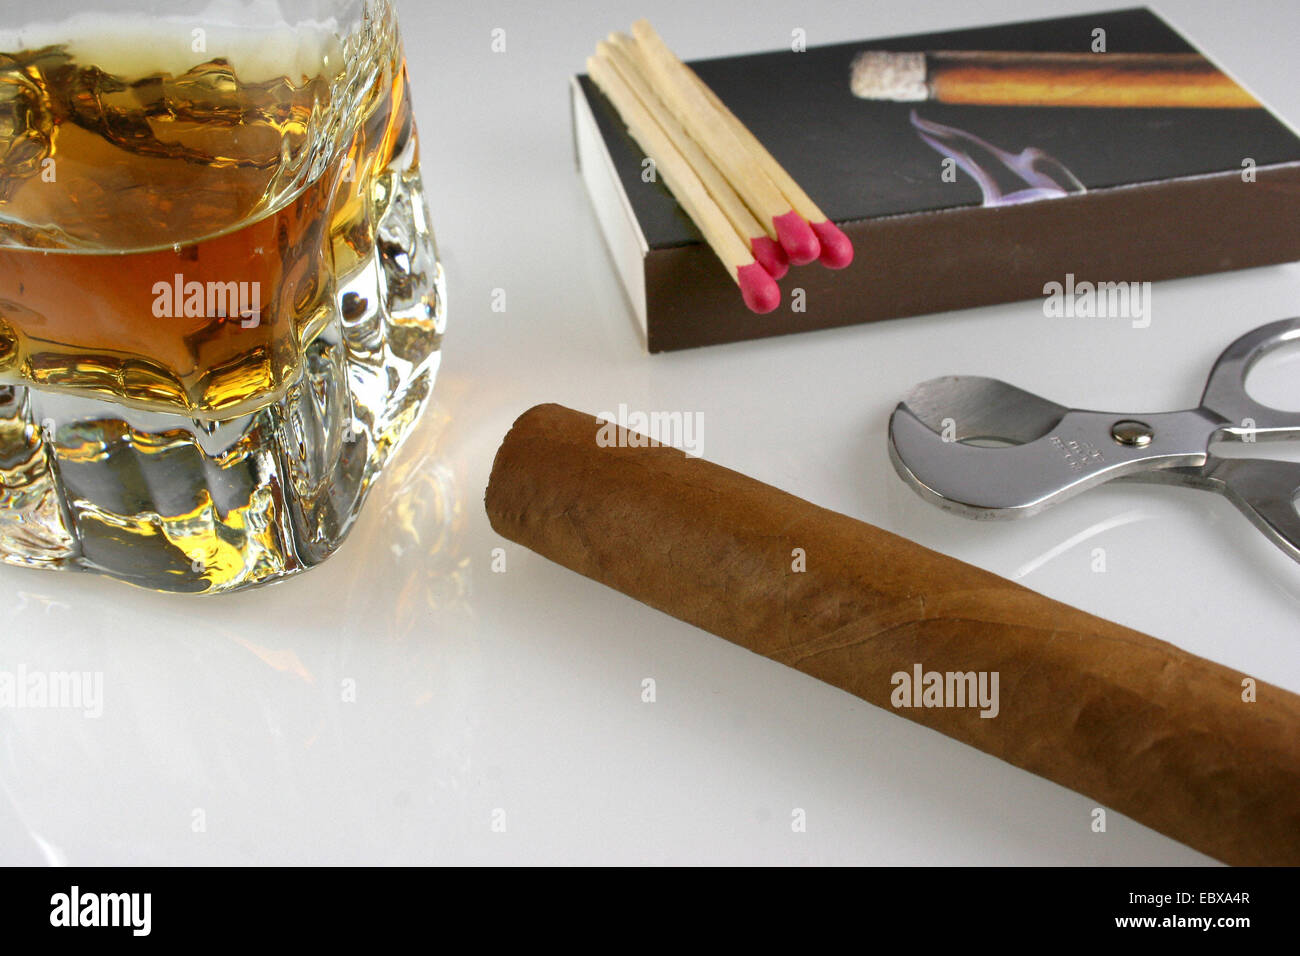 semiluxury food, cognac, cigarre and cigar cutter - Stock Image